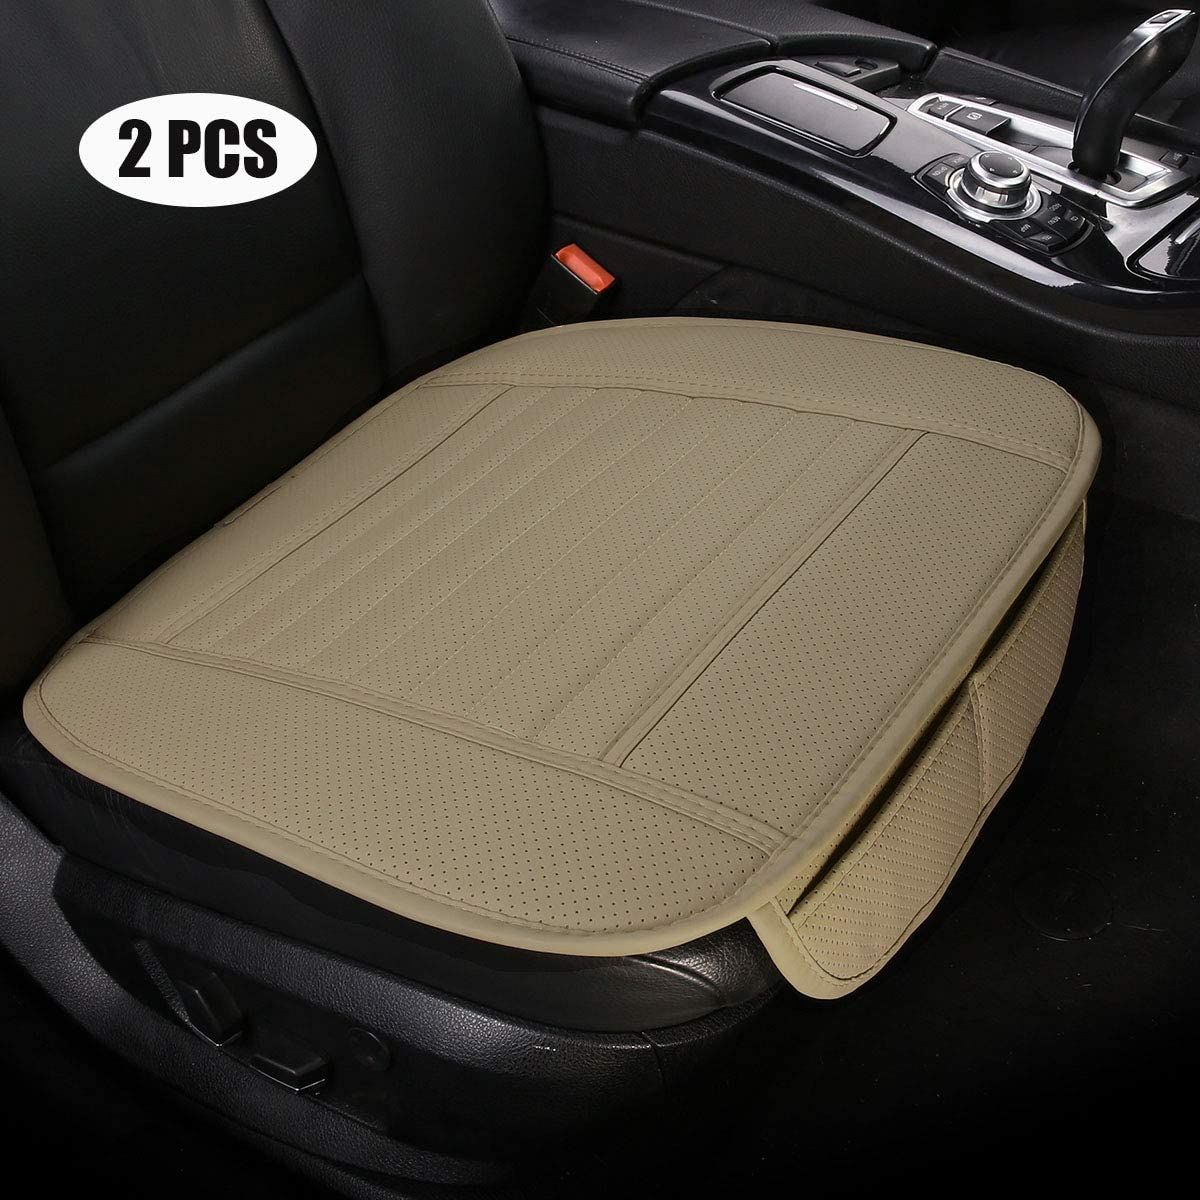 2 PCS Car Interior Winter Seat Protector Universal Warm Plush Car Seat Cover Winter Front Seat Cushion for Car Seat Protector Beige EDEALYN